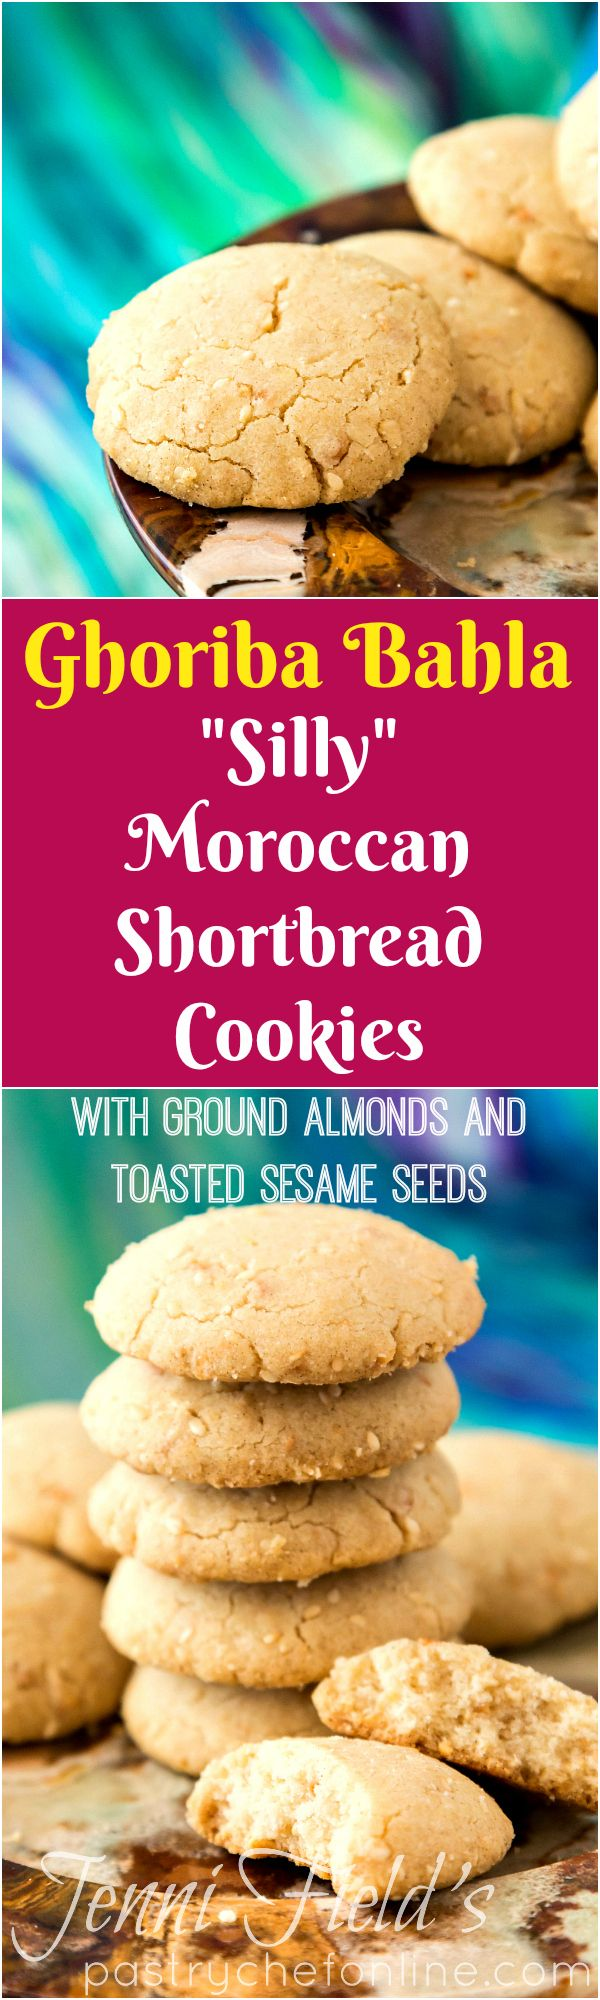 """Ghoriba Bahla are Moroccan shortbread cookies with cracks in their tops. The name ghoriba bahla translates to """"silly stranger,"""" but there is nothing silly or strange about these crunchy, crumbly, lightly sweet shortbread cookies flavored with toasted sesame and ground almonds. The perfect cookie recipe to make to serve alongside tea or coffee. Enjoy! 